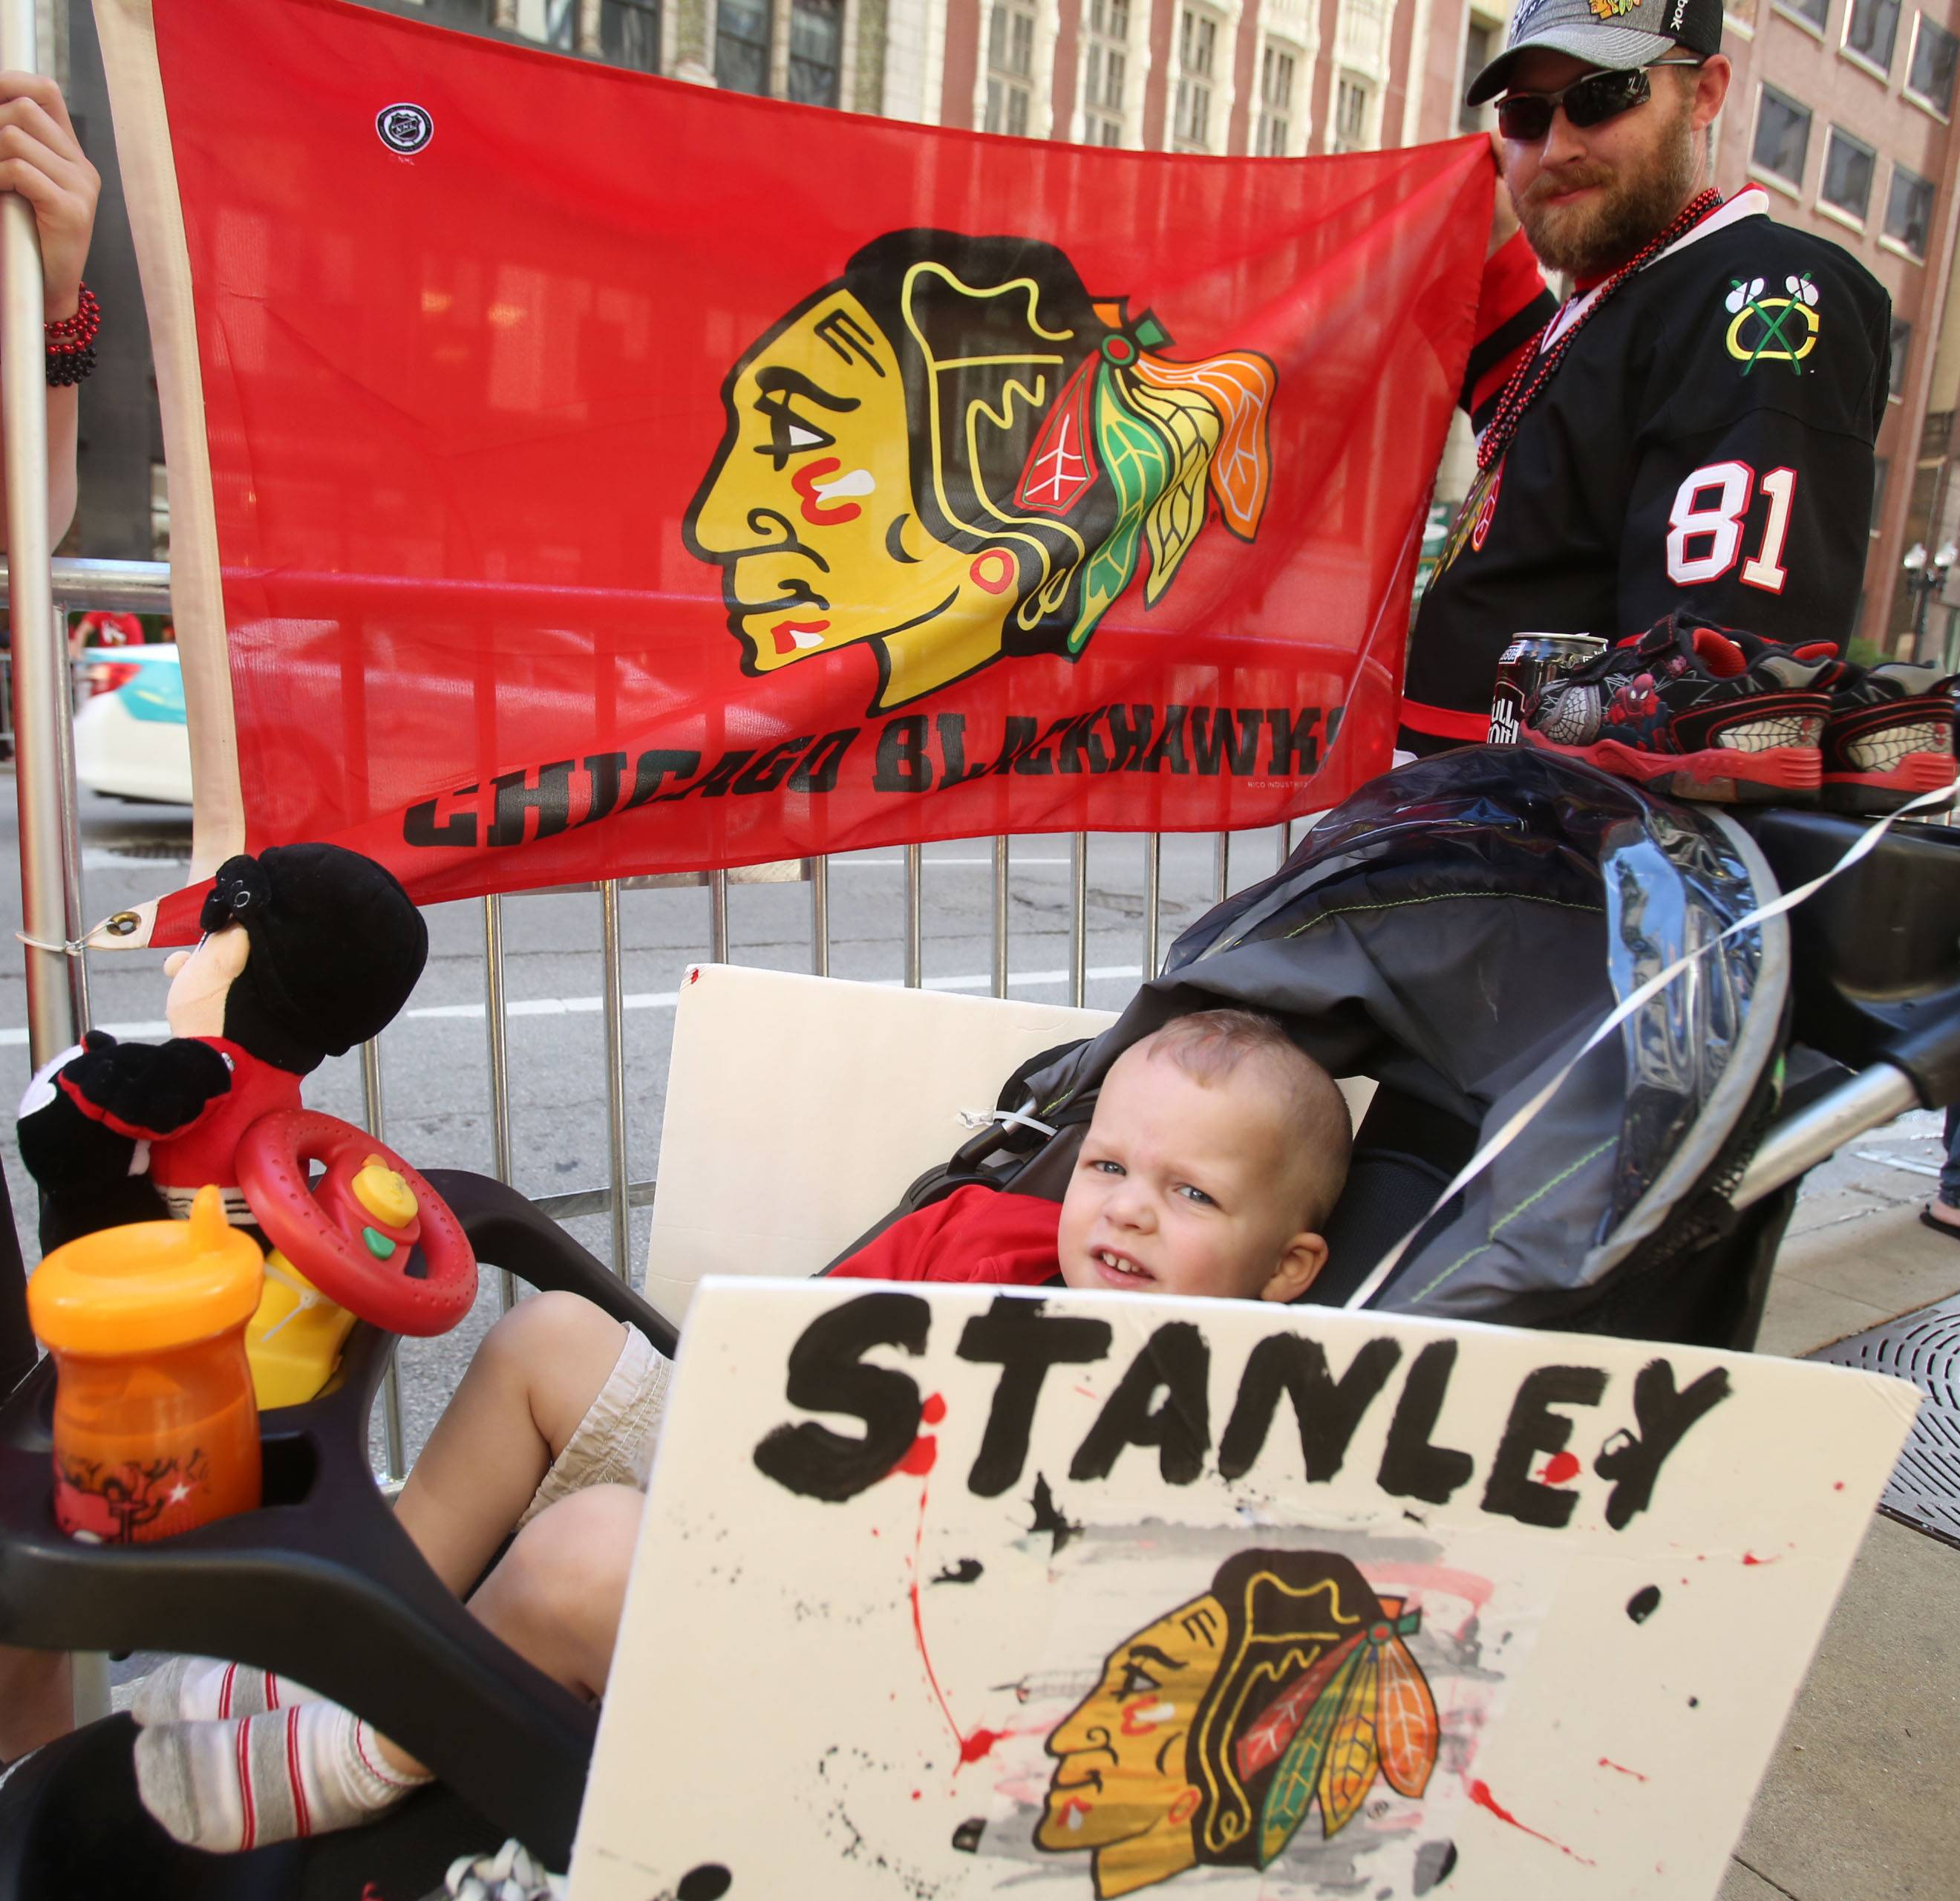 Derek Alford, 3, sits back with his mohawk haircut as his dad Eric Alford, holds a Blackhawks banner. Both of Lake in the Hills, they were waiting for the Stanley Cup parade on Washington Street in Chicago in 2013.